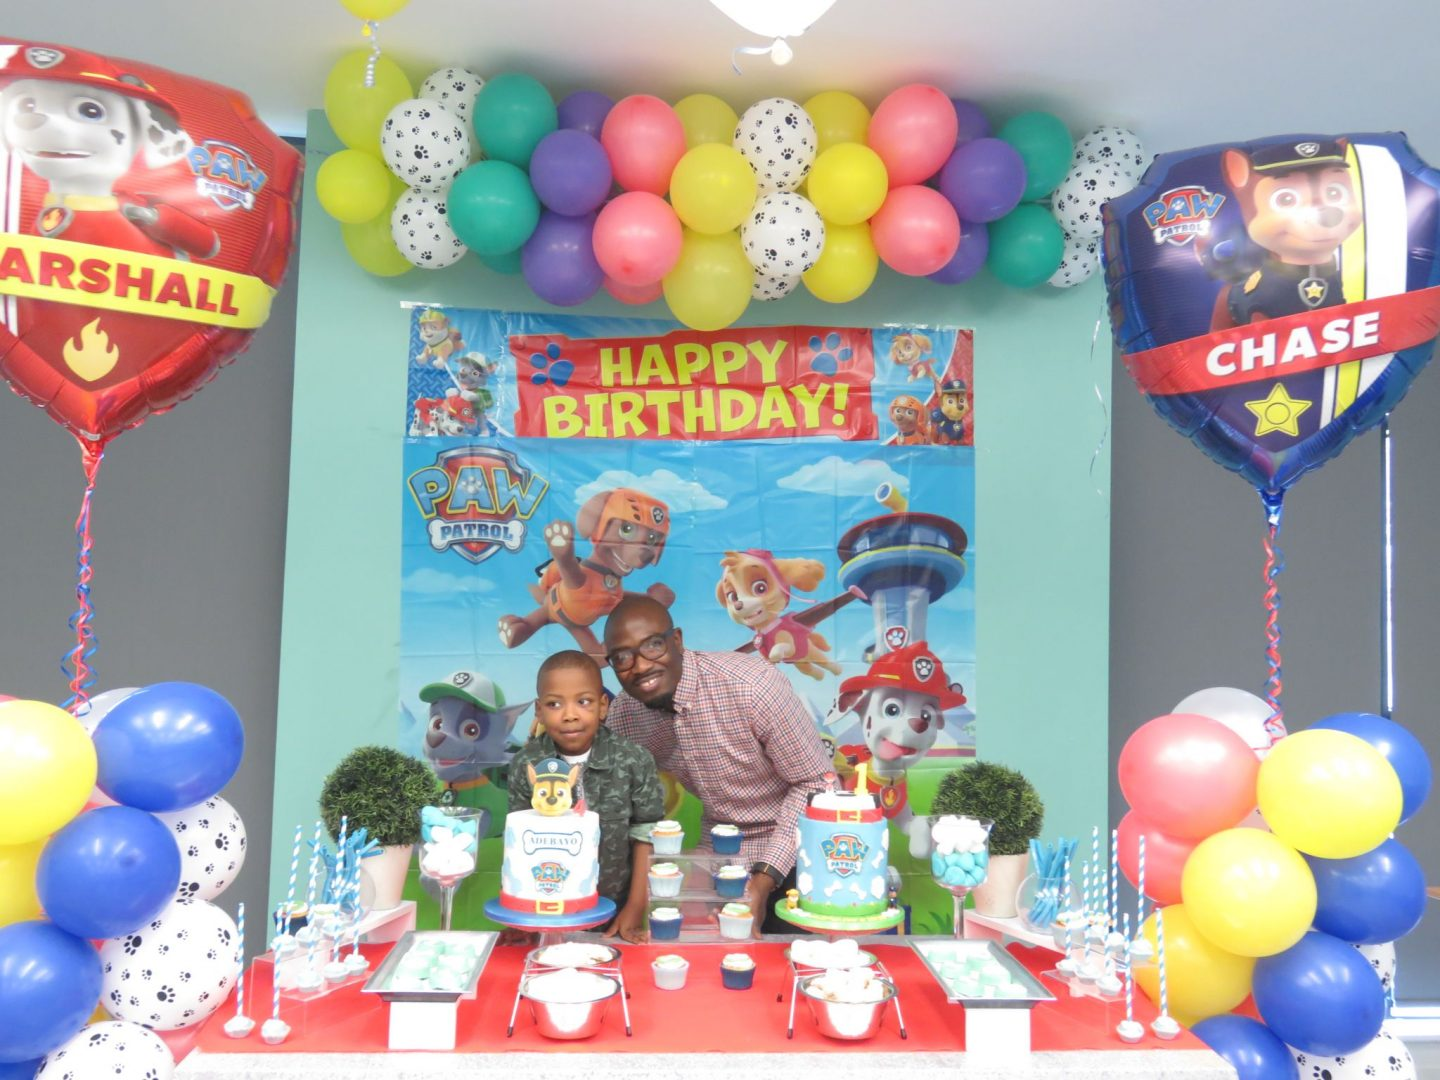 A Paw Patrol Themed Birthday Party